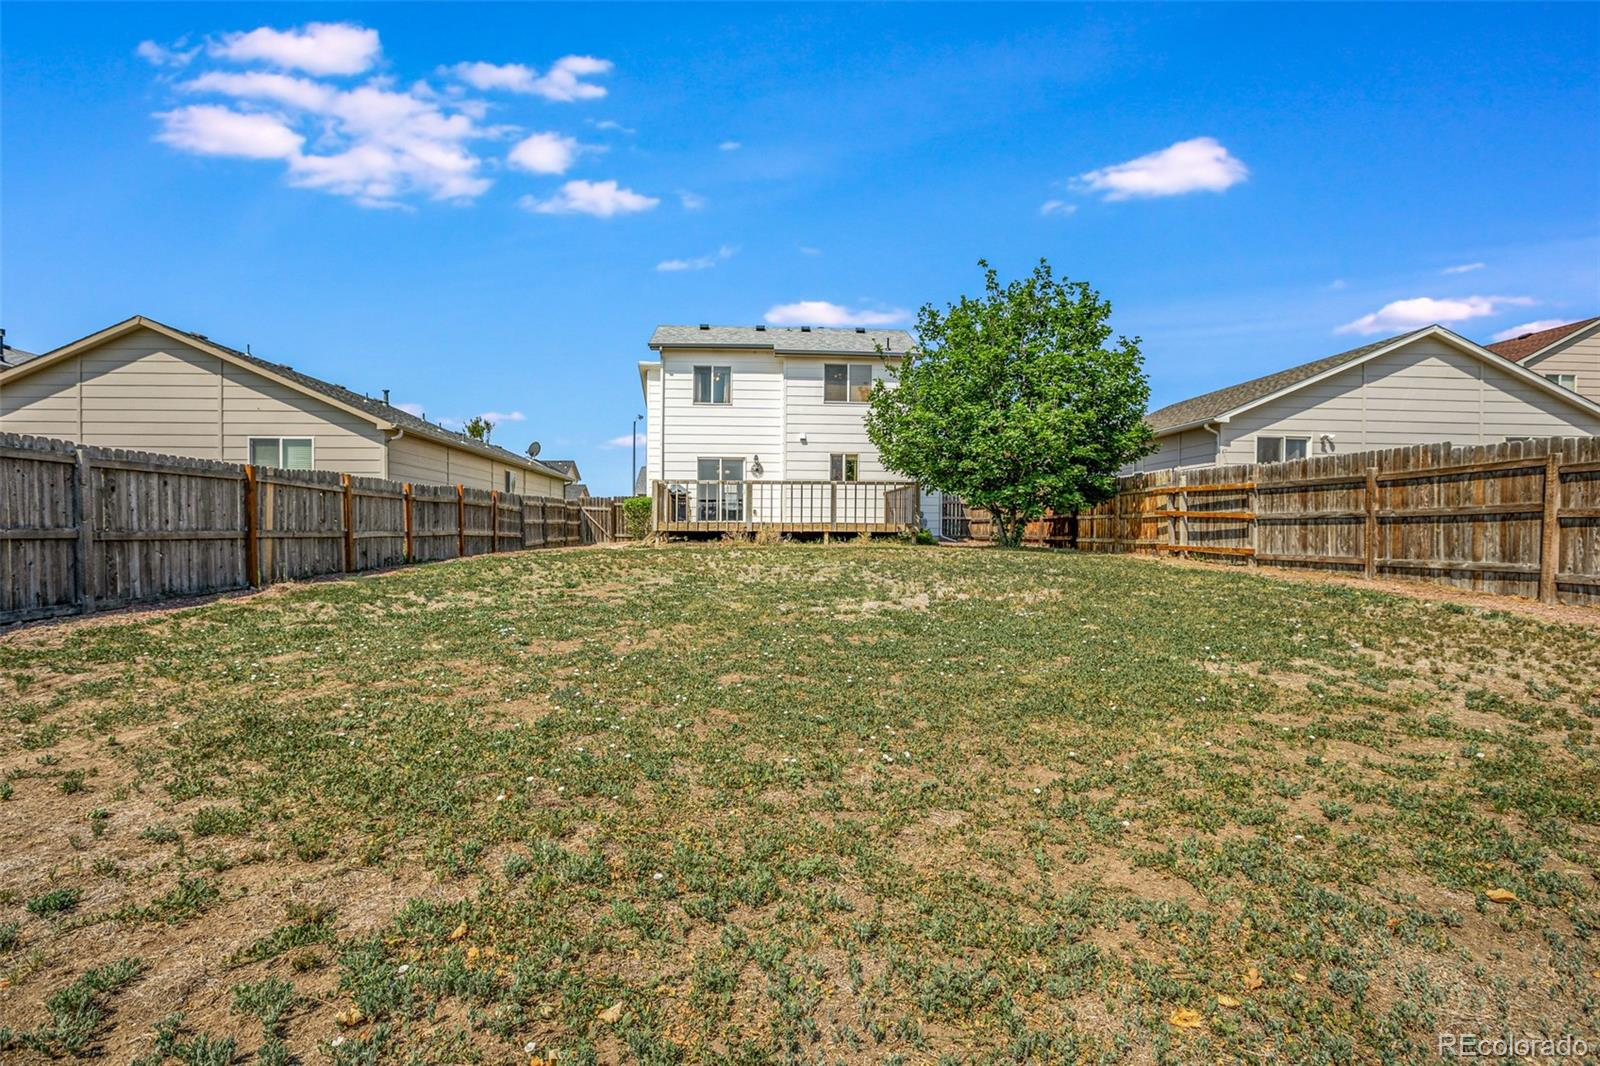 MLS# 6387968 - 25 - 7580 Middle Bay Way, Fountain, CO 80817